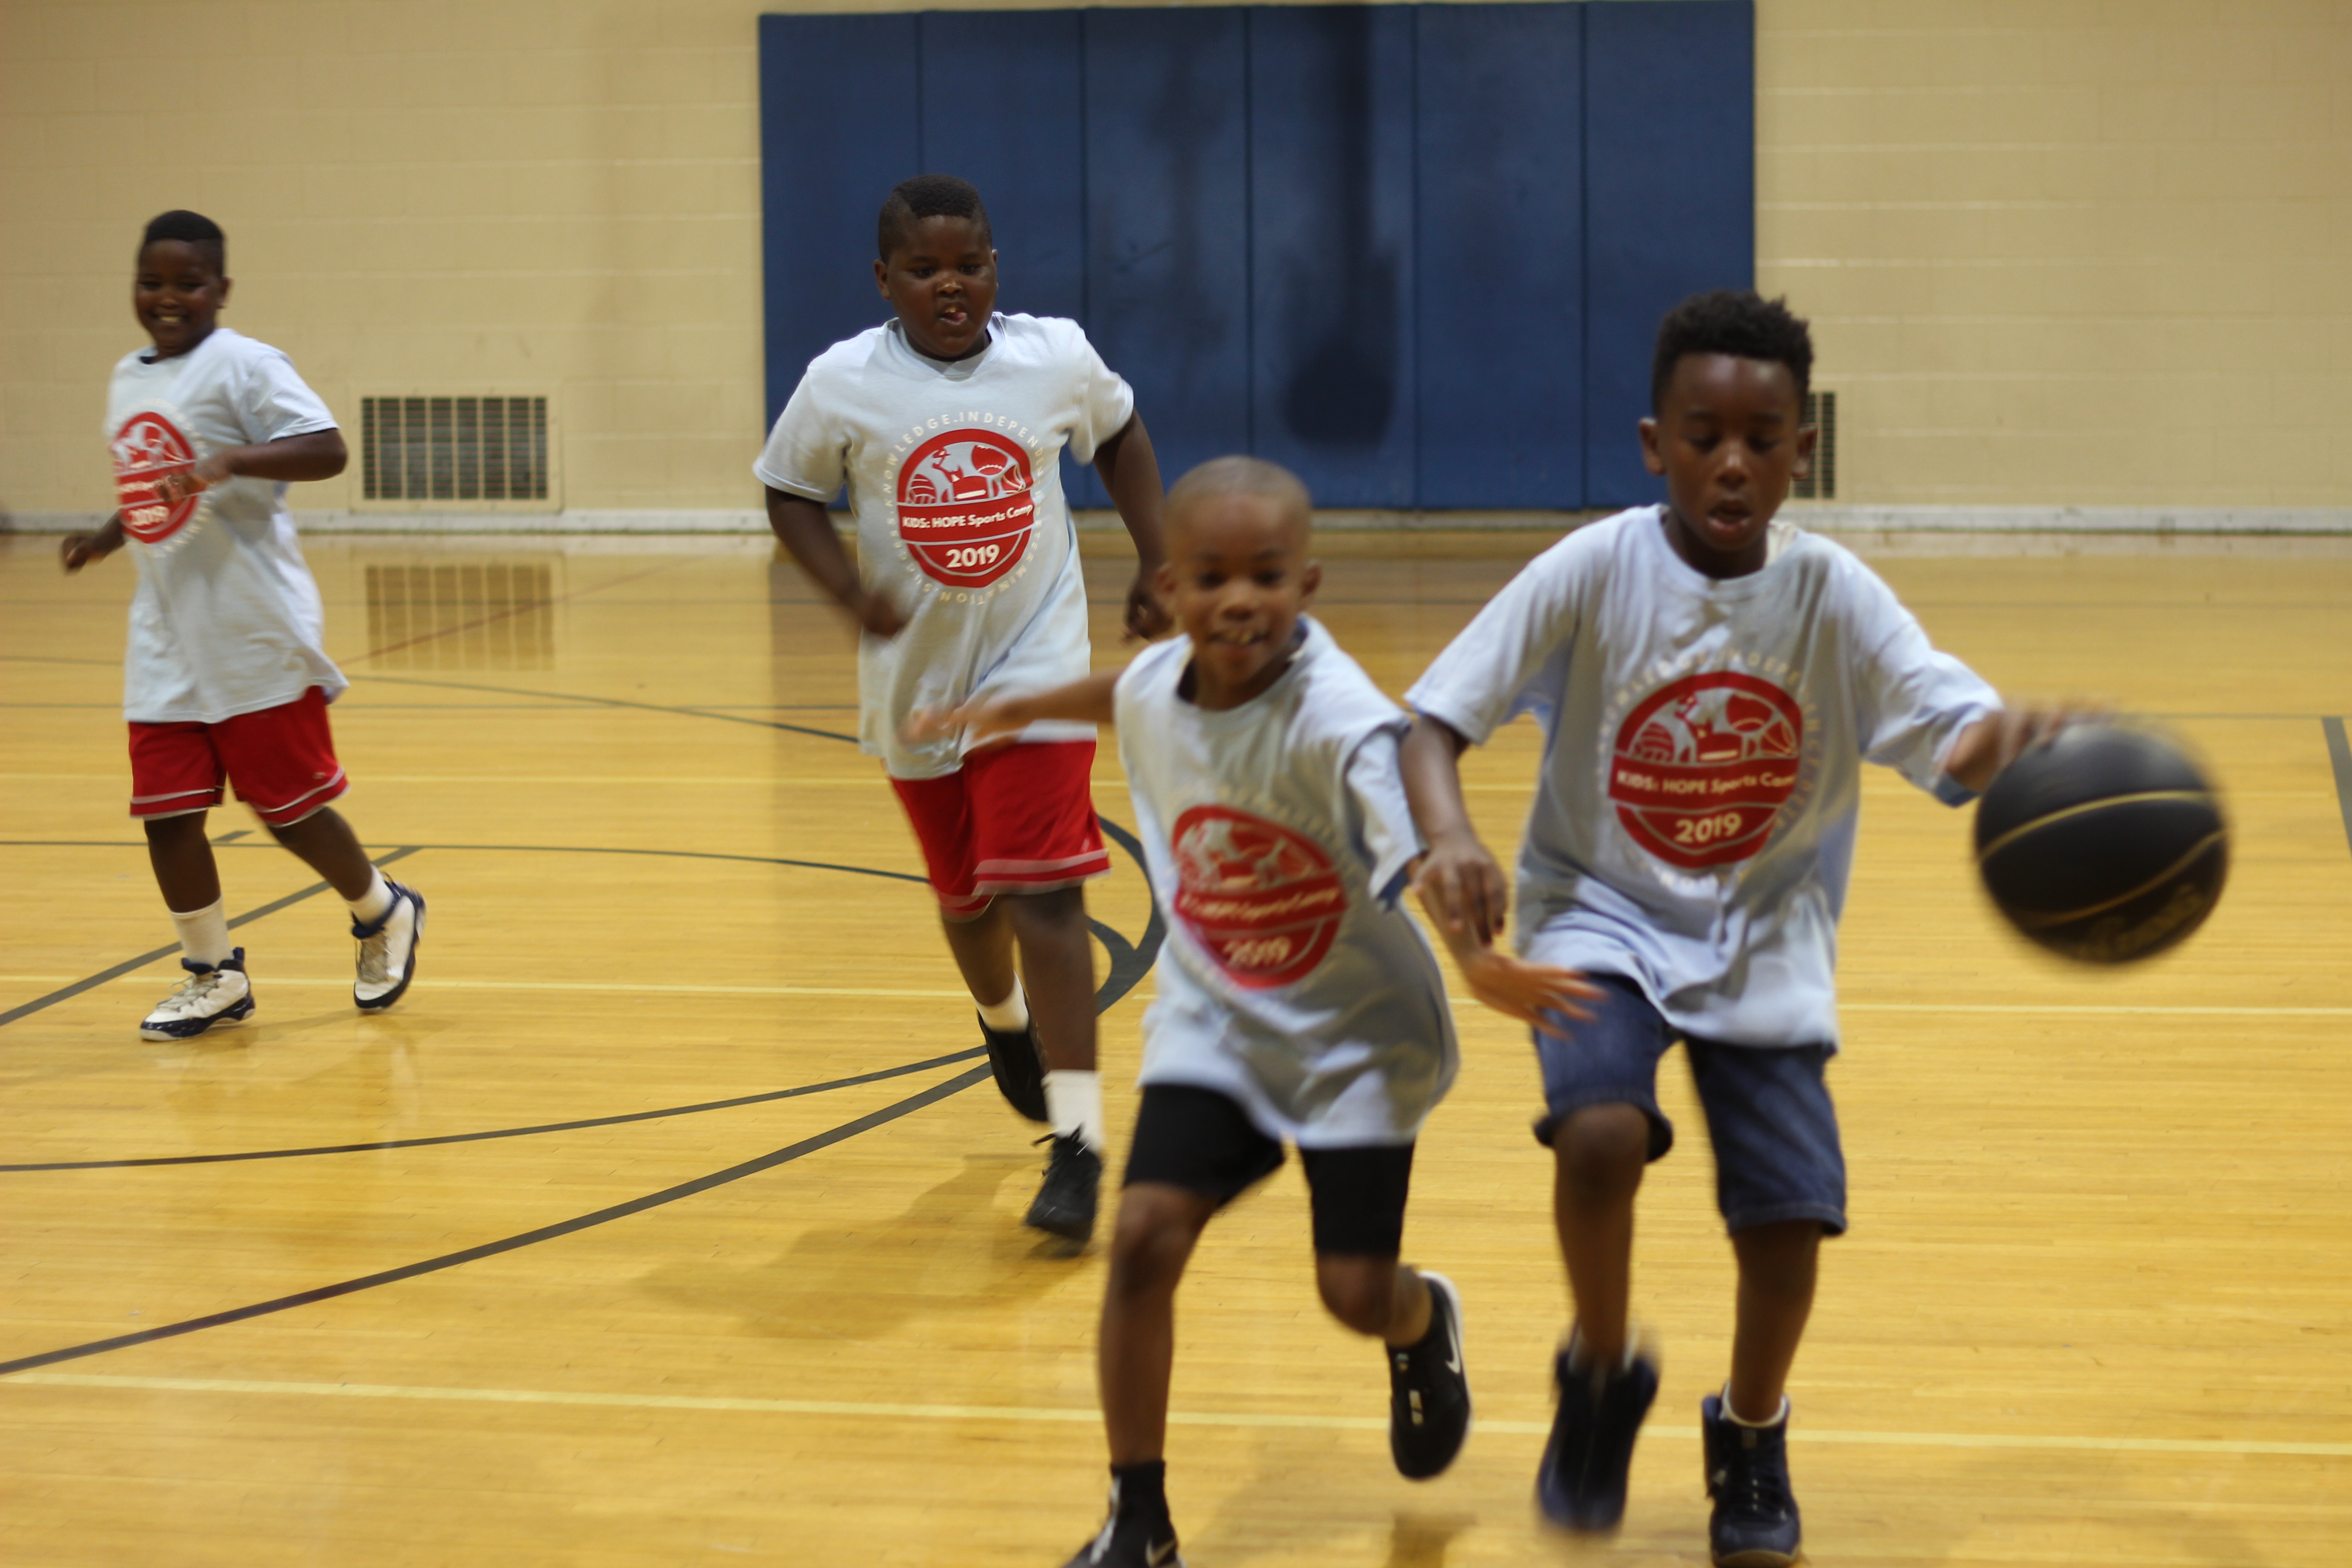 Focus: HOPE Celebrates Kids: HOPE Summer Basketball Camp